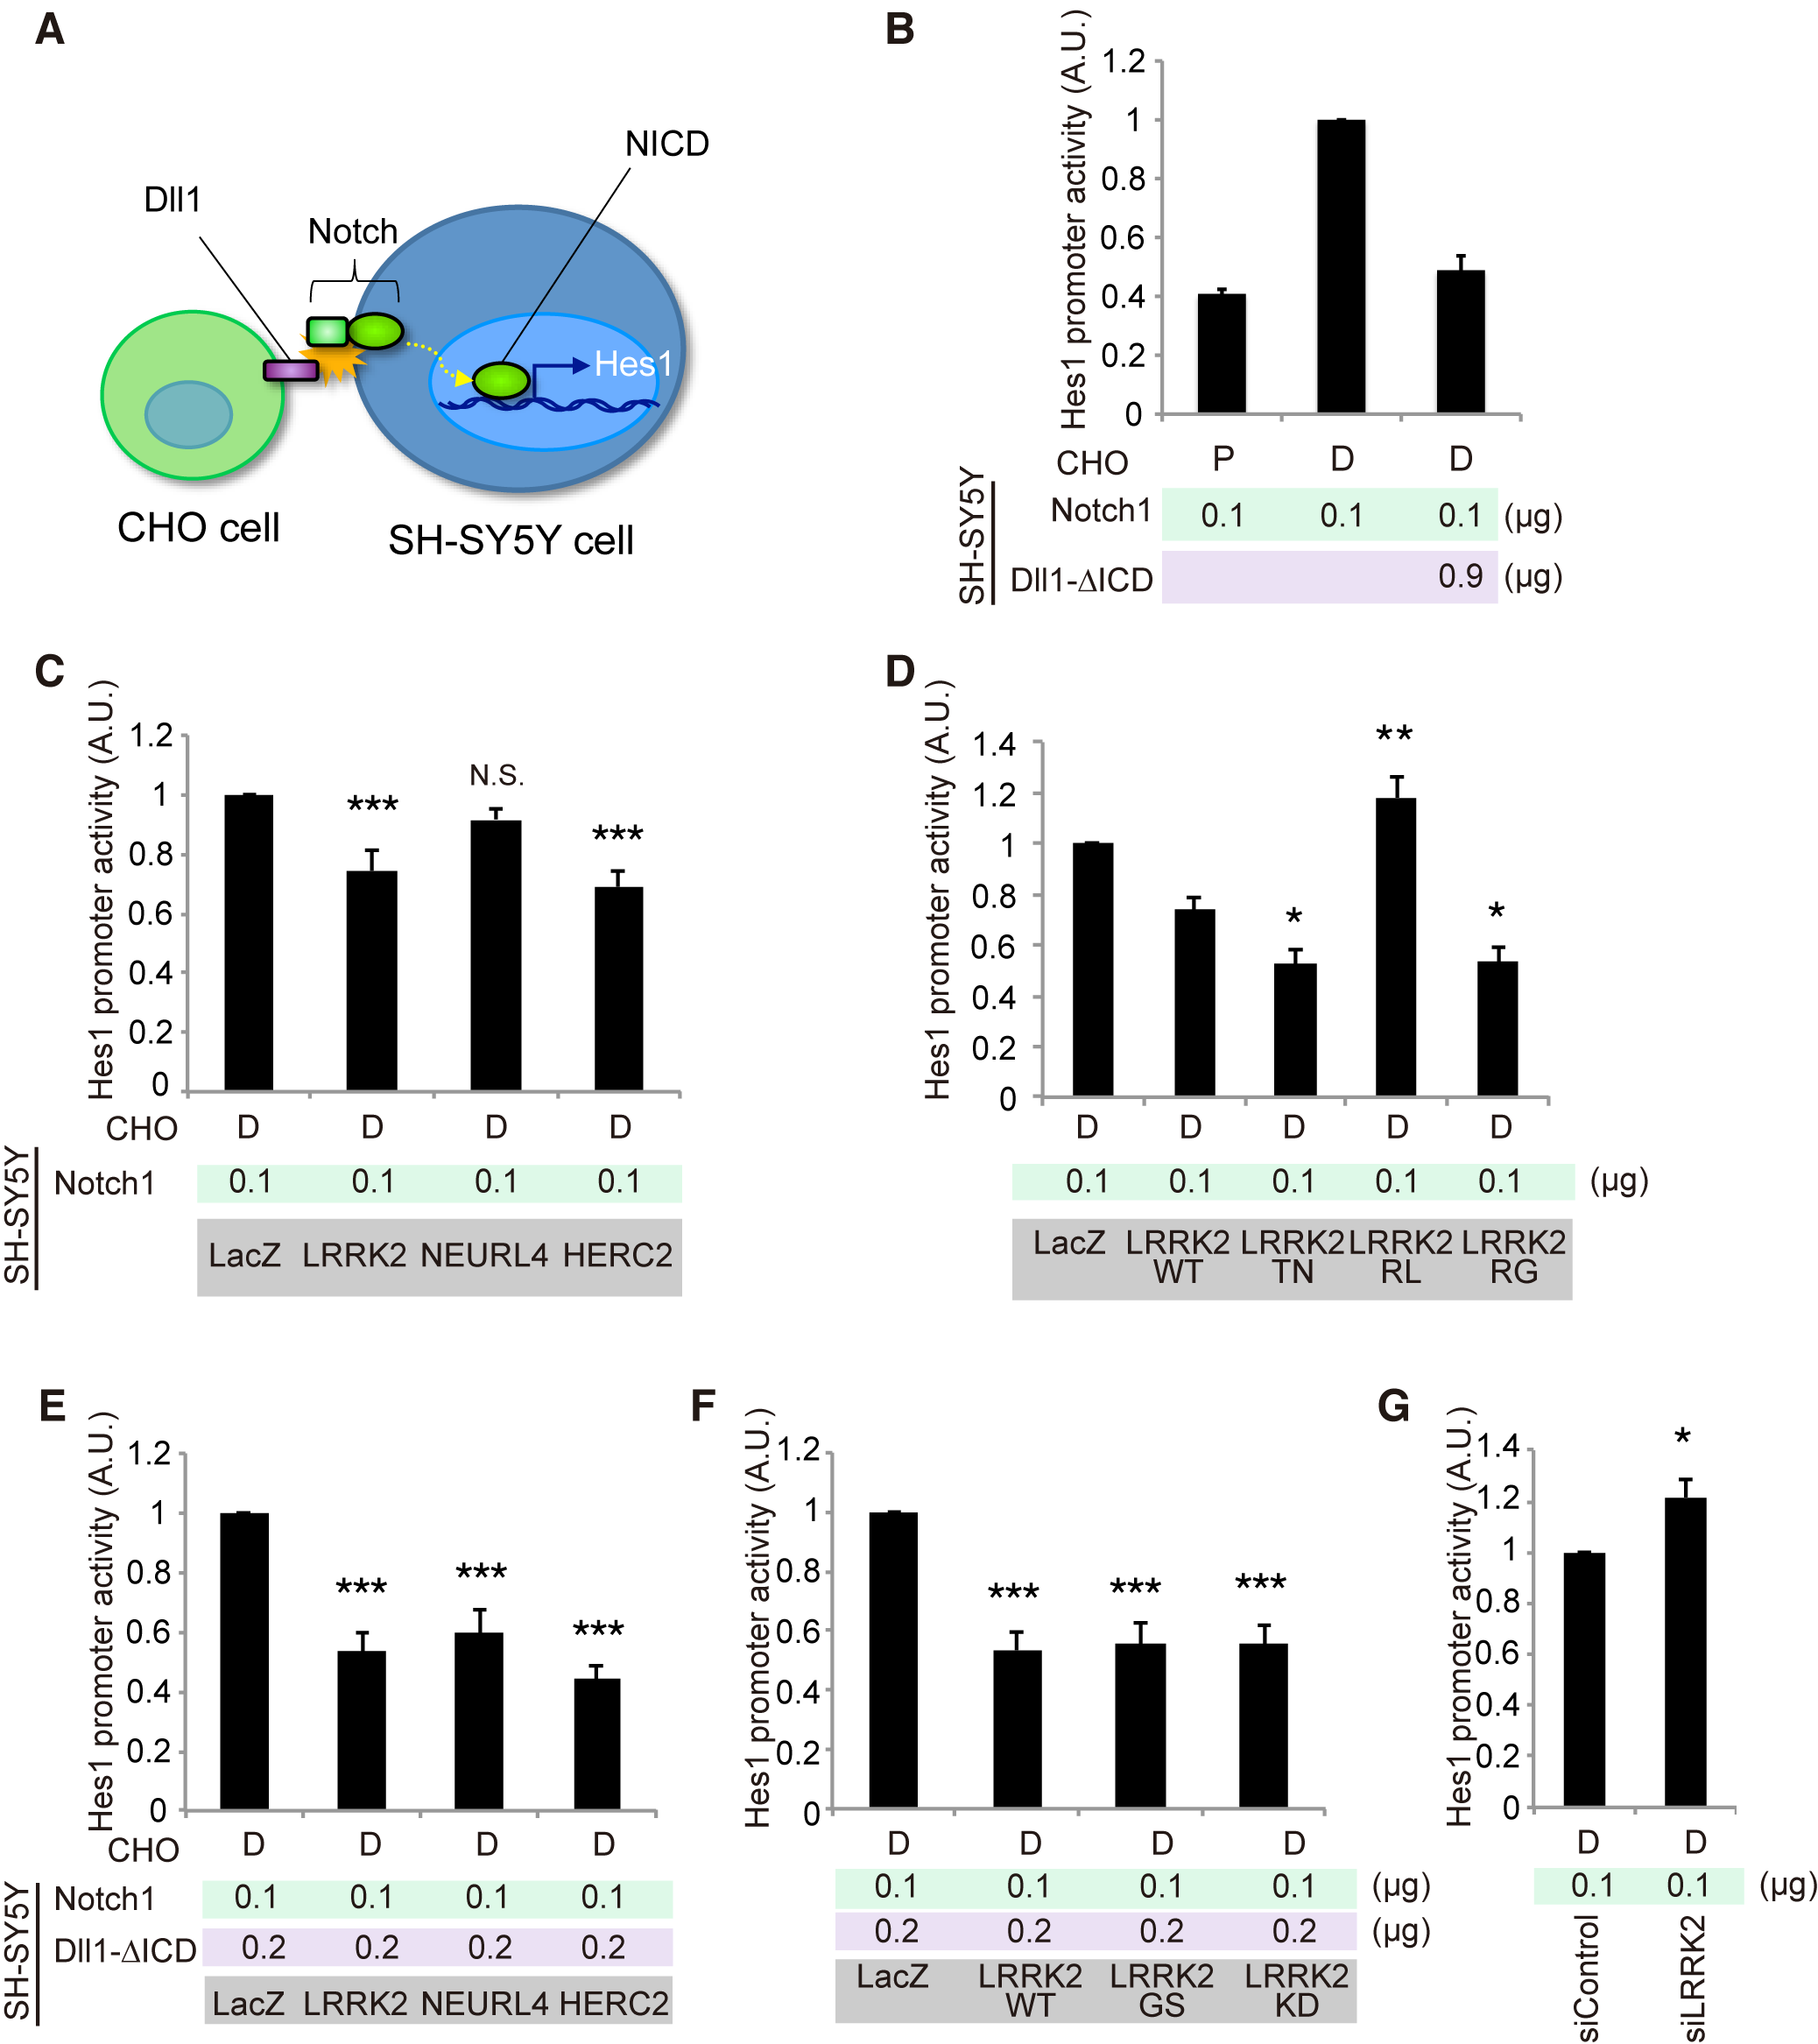 LRRK2, NEURL4 and HERC2 modulate Notch signal intensity in cultured cells.